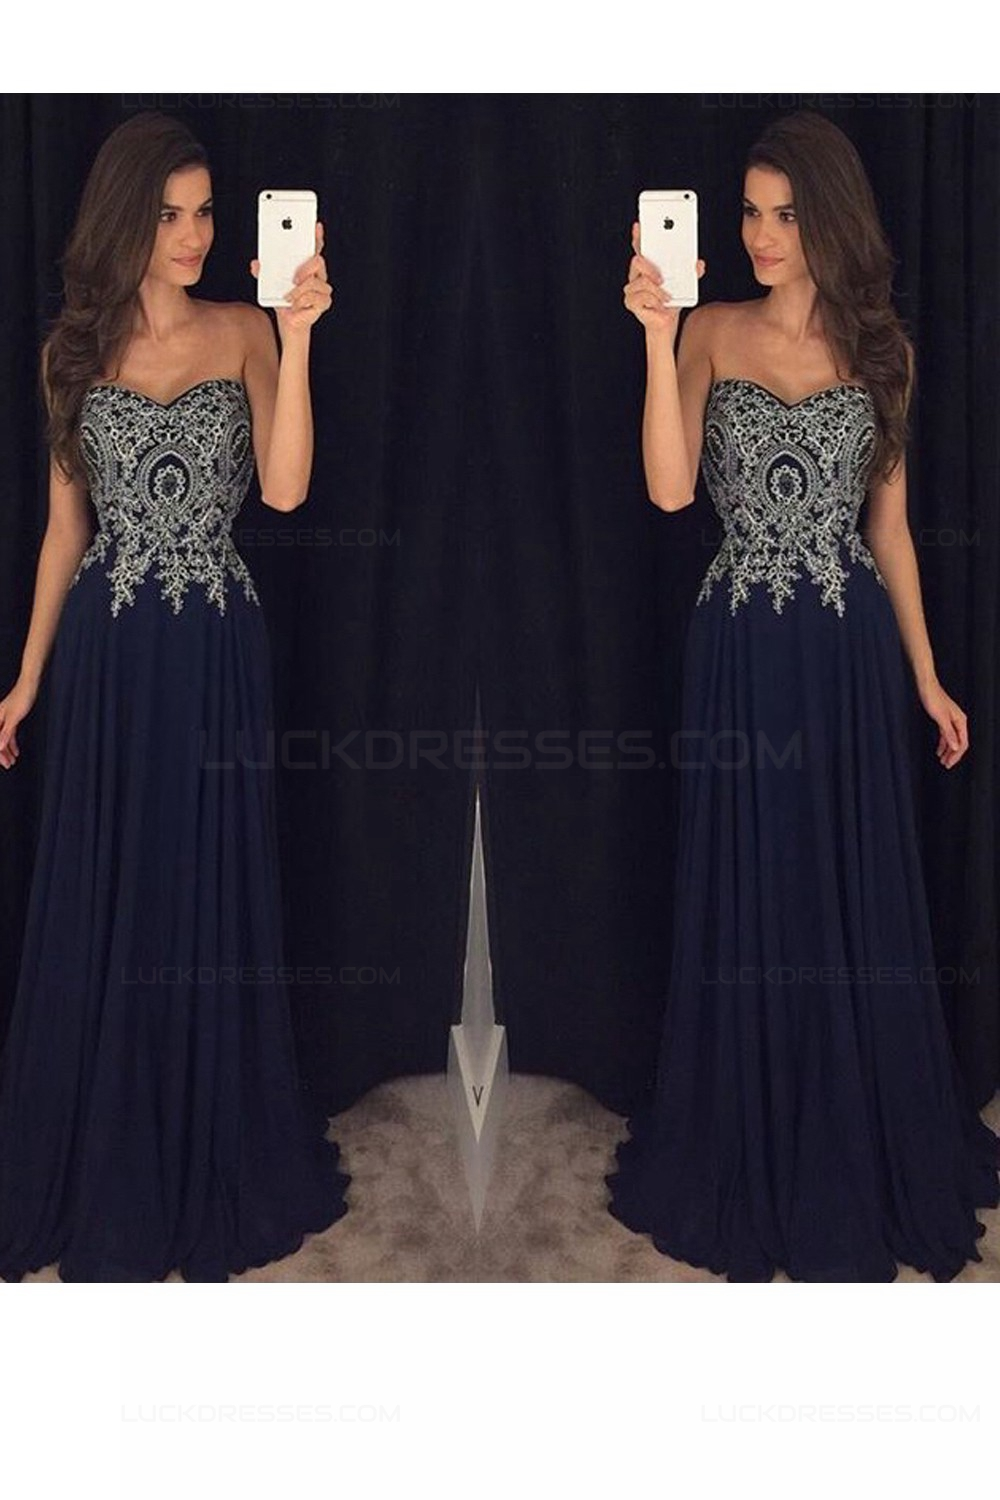 To acquire Silver and Black sweetheart prom dresses pictures picture trends